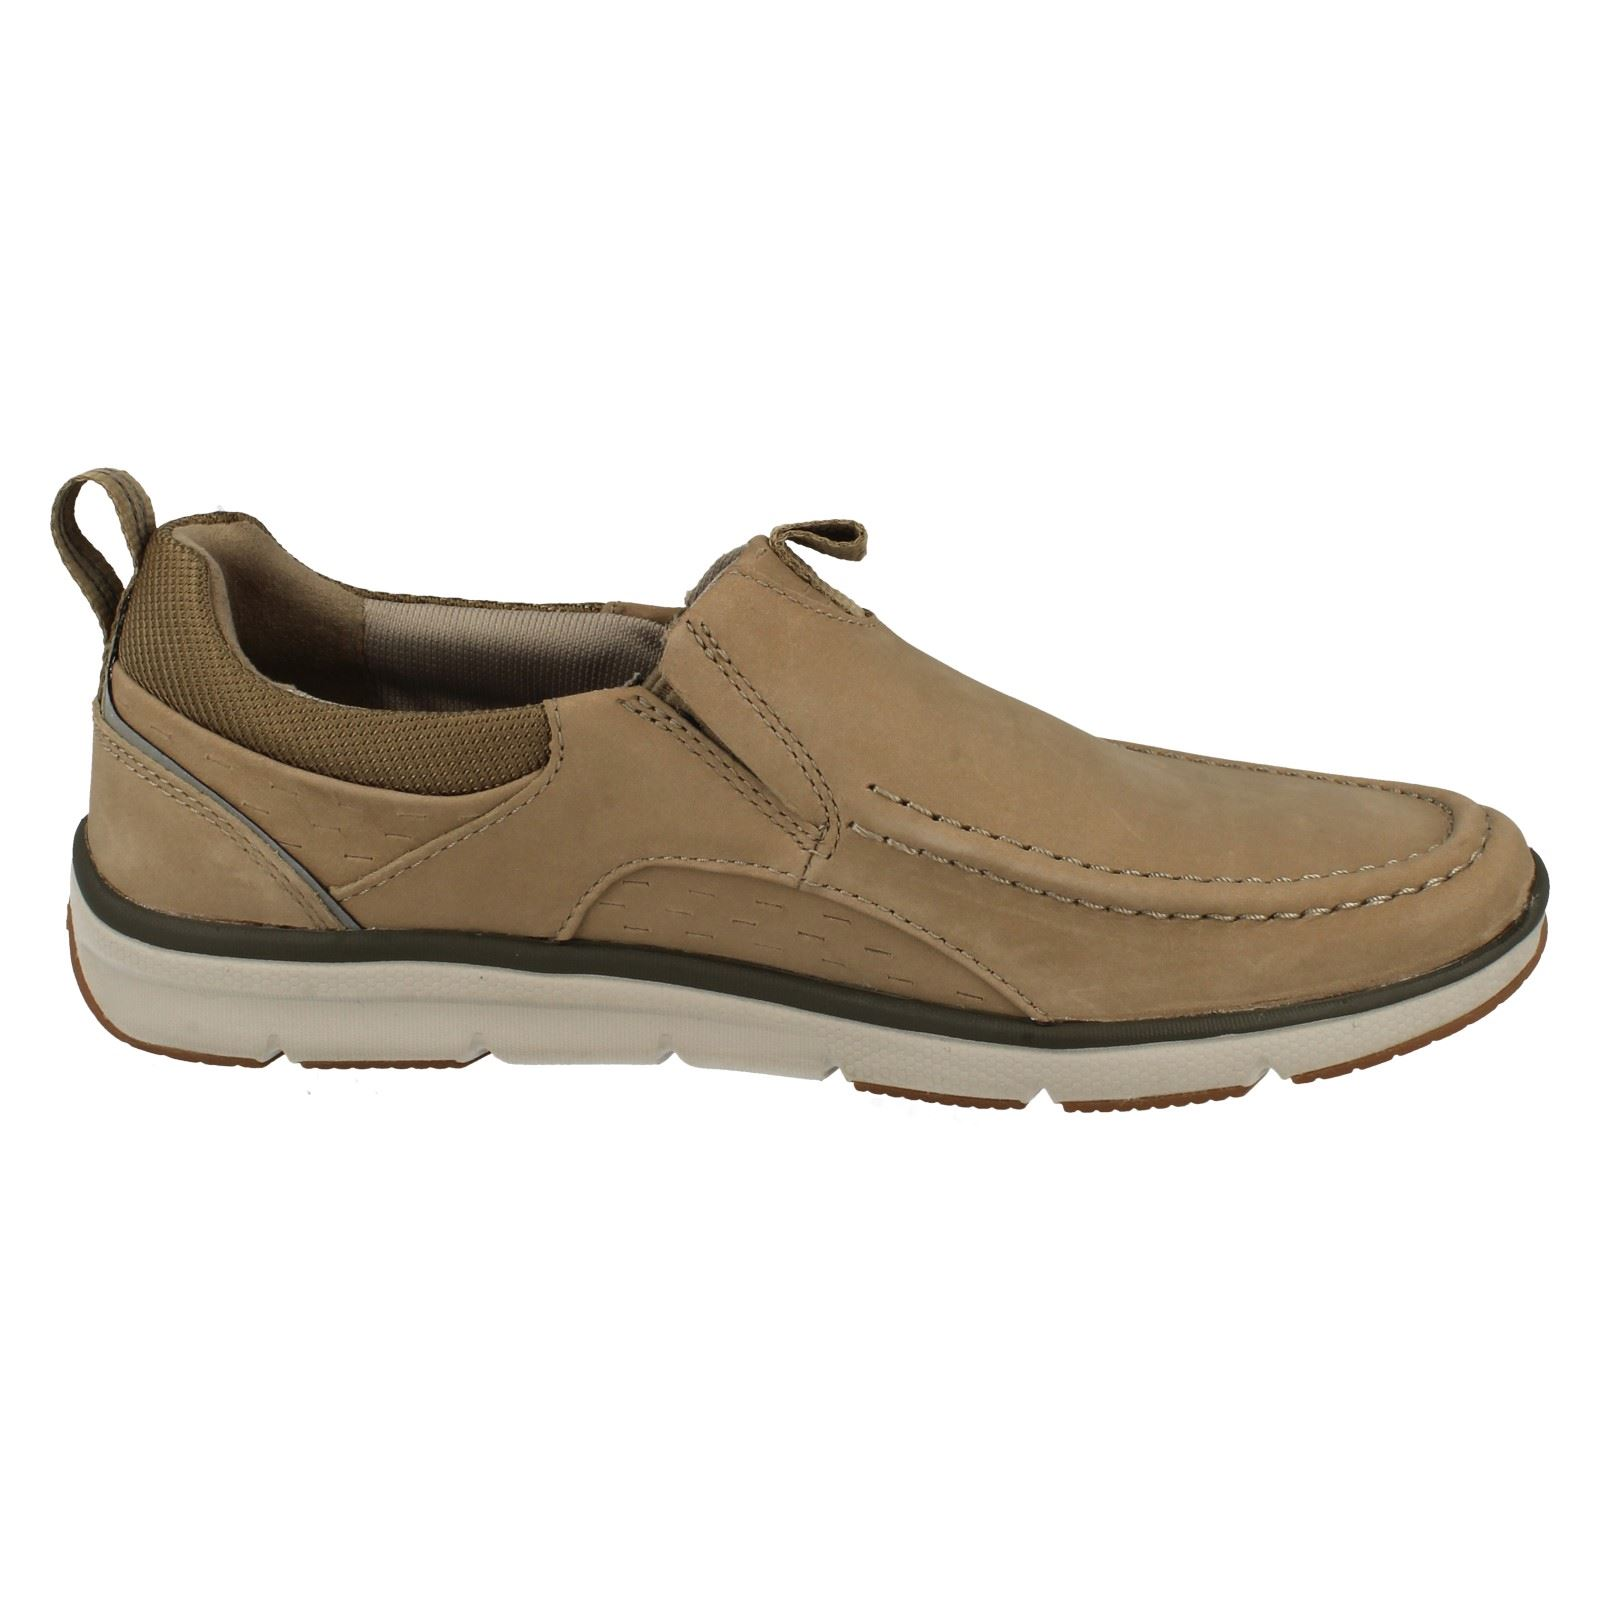 mens clarks moccasin style casual slip on shoes orson row